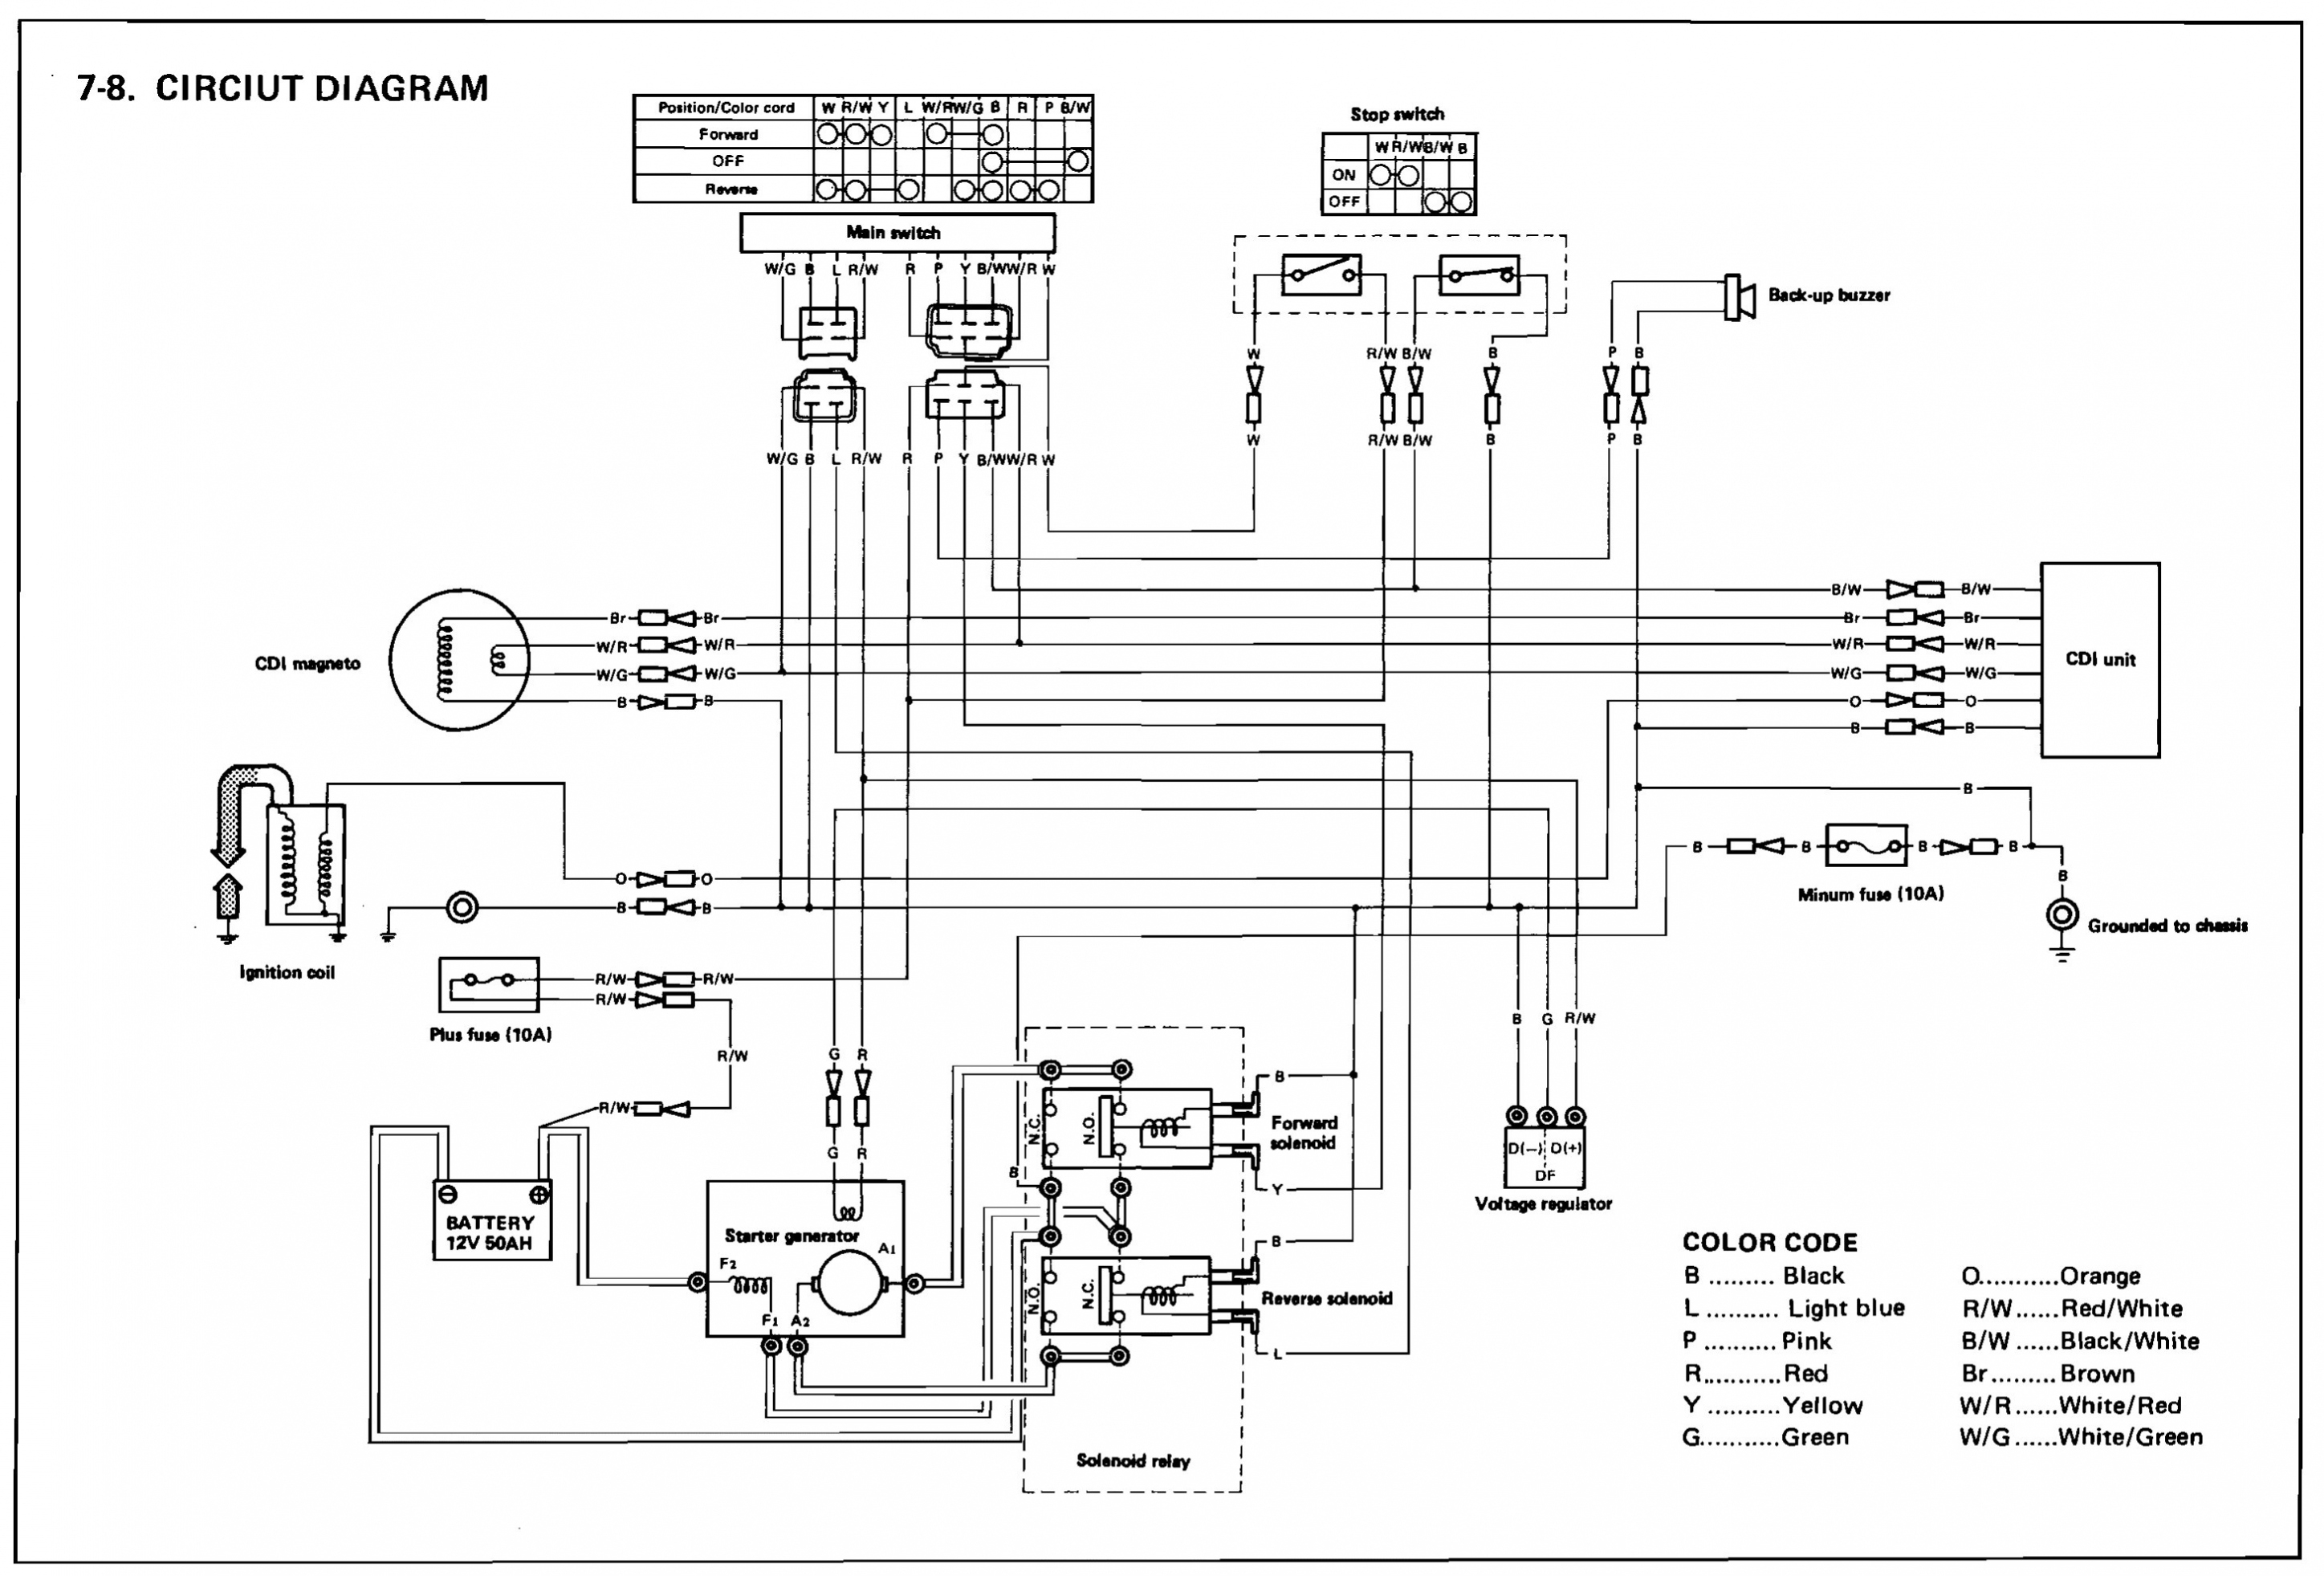 Wire Diagram Ez Go Txt 48 - Wiring Diagram Blog - 48 Volt Club Car Wiring Diagram